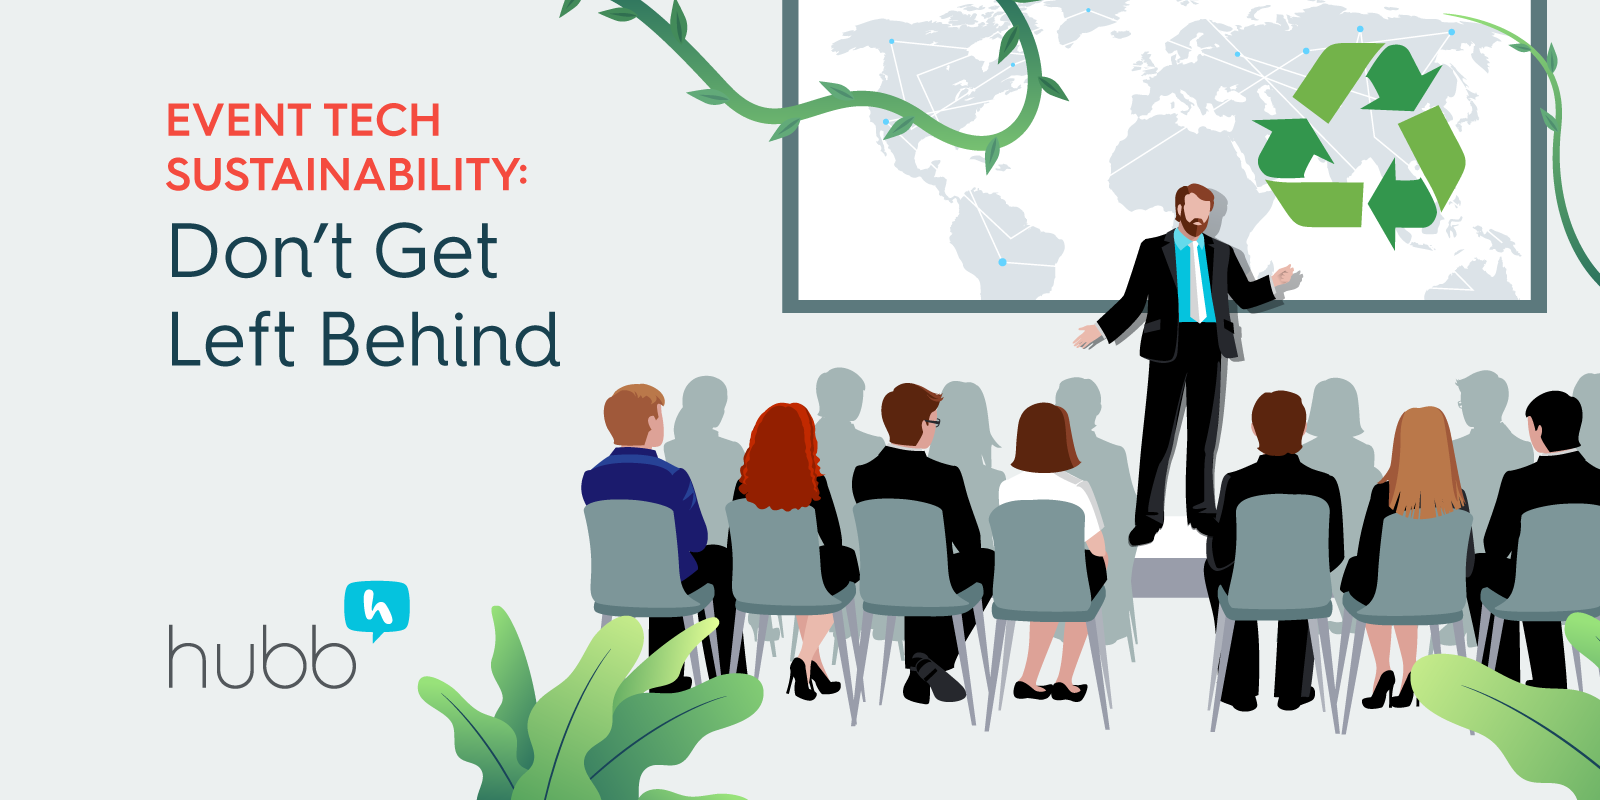 [Webinar] Event Tech Sustainability: Don't Get Left Behind